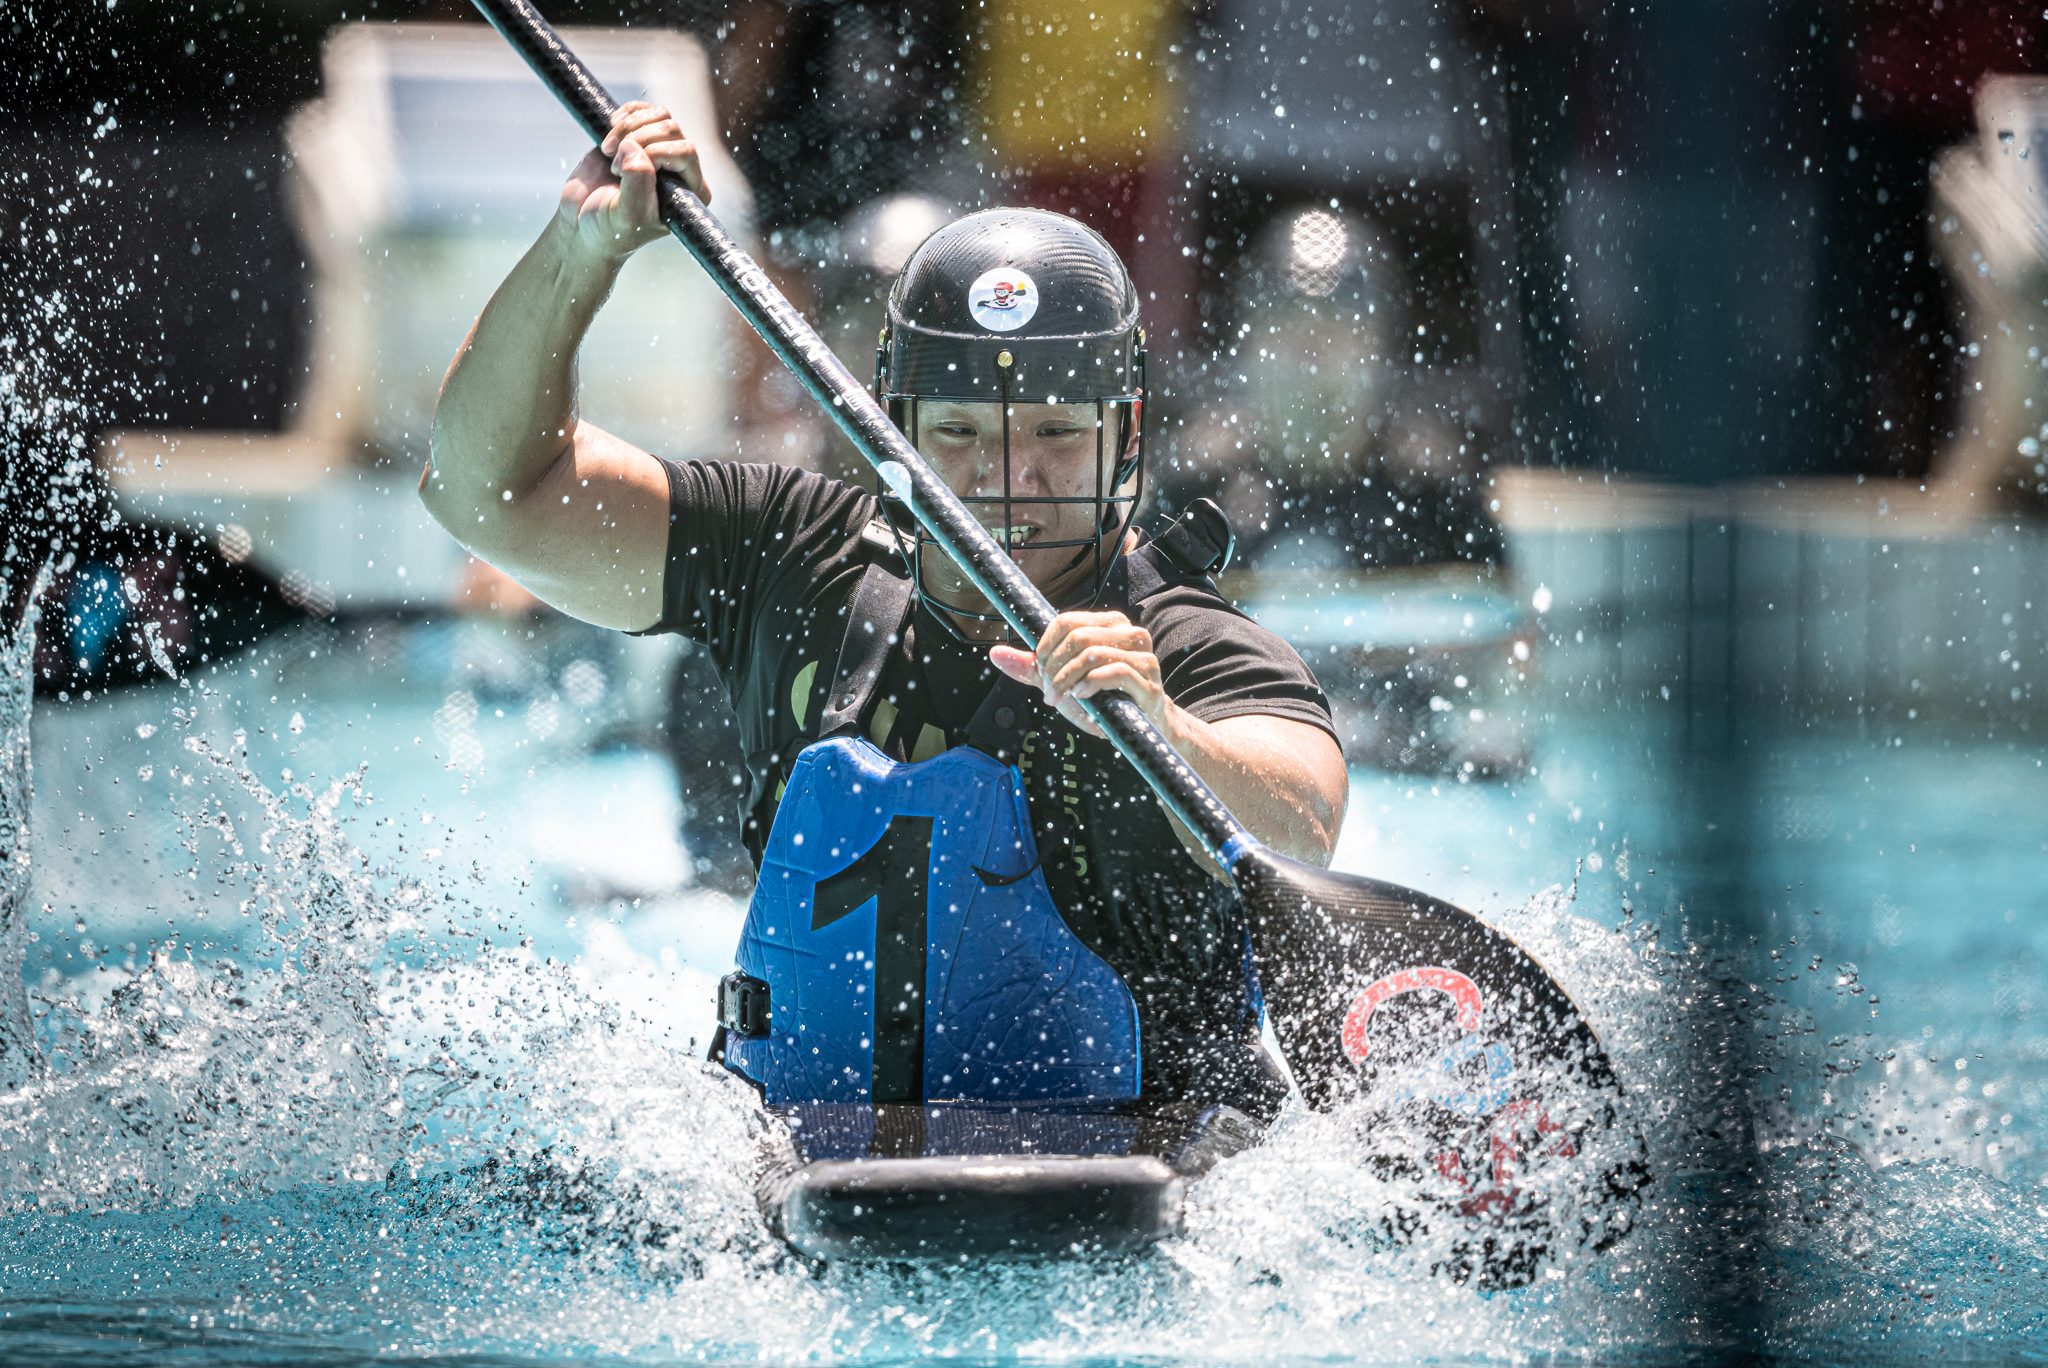 A Canoe polo player in action during the Pesta Sukan Canoe Polo Championships at Toa Payoh Swimming Complex.